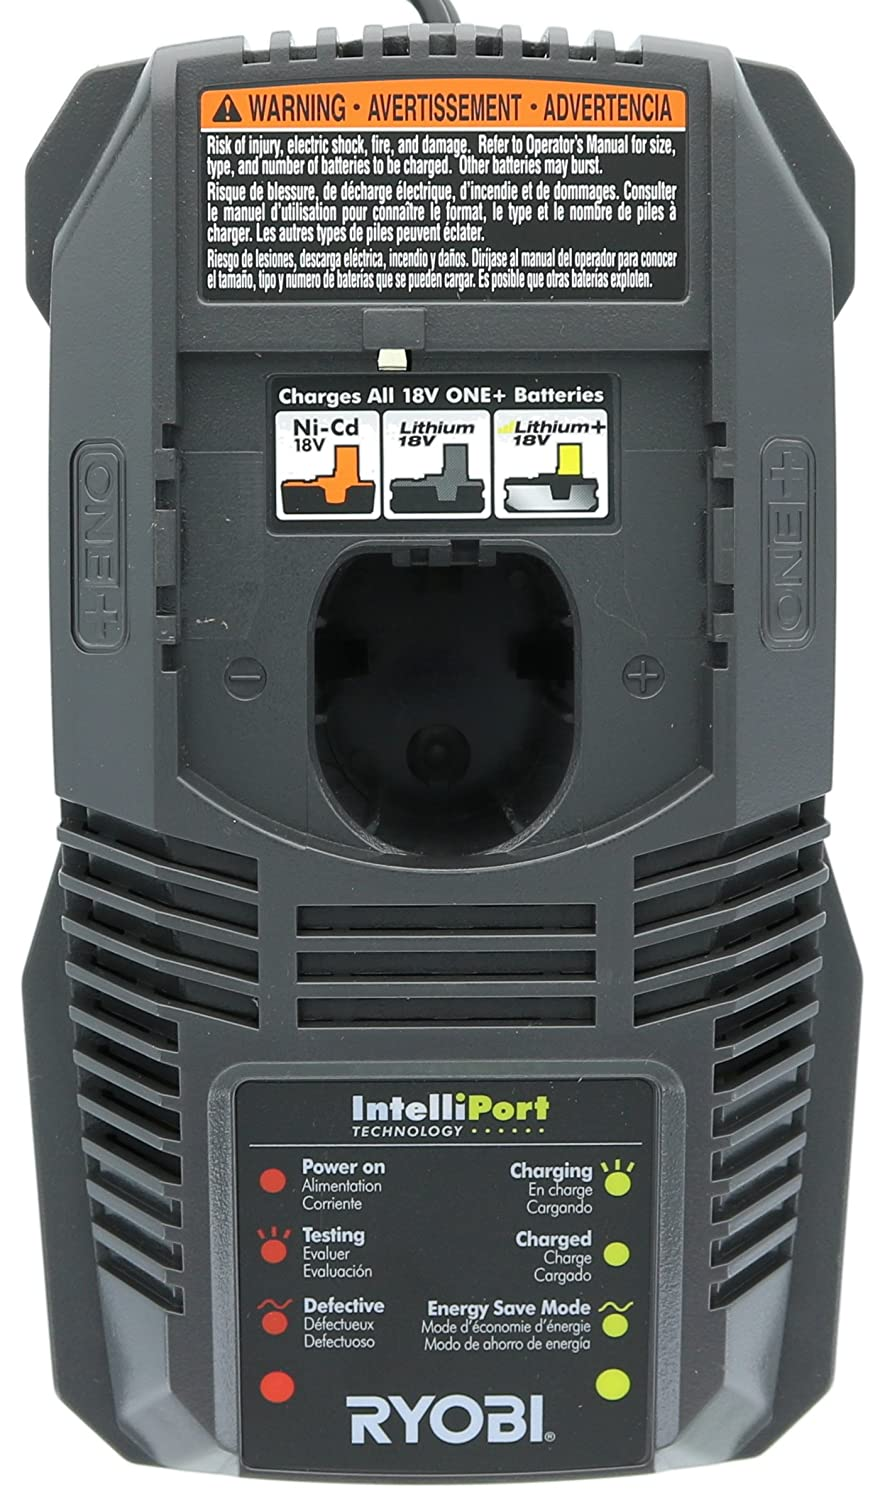 Ryobi P118 Lithium IonDual Chemistry Battery Charger for One+ 18 Volt Batteries (Battery Not Included / Charger Only)